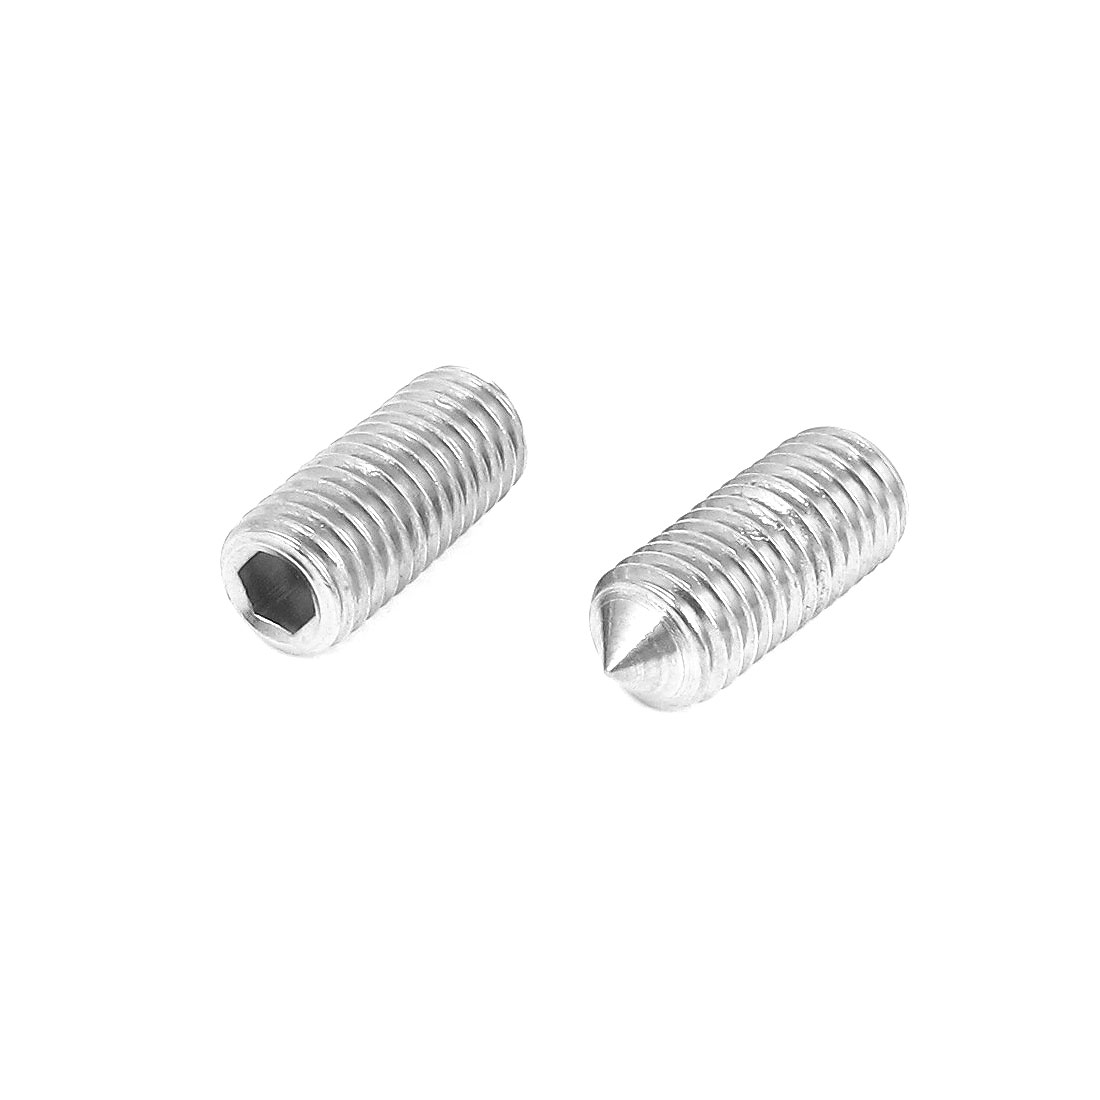 M12x30mm 304 Stainless Steel Cone Point Hexagon Socket Grub Screws 2pcs